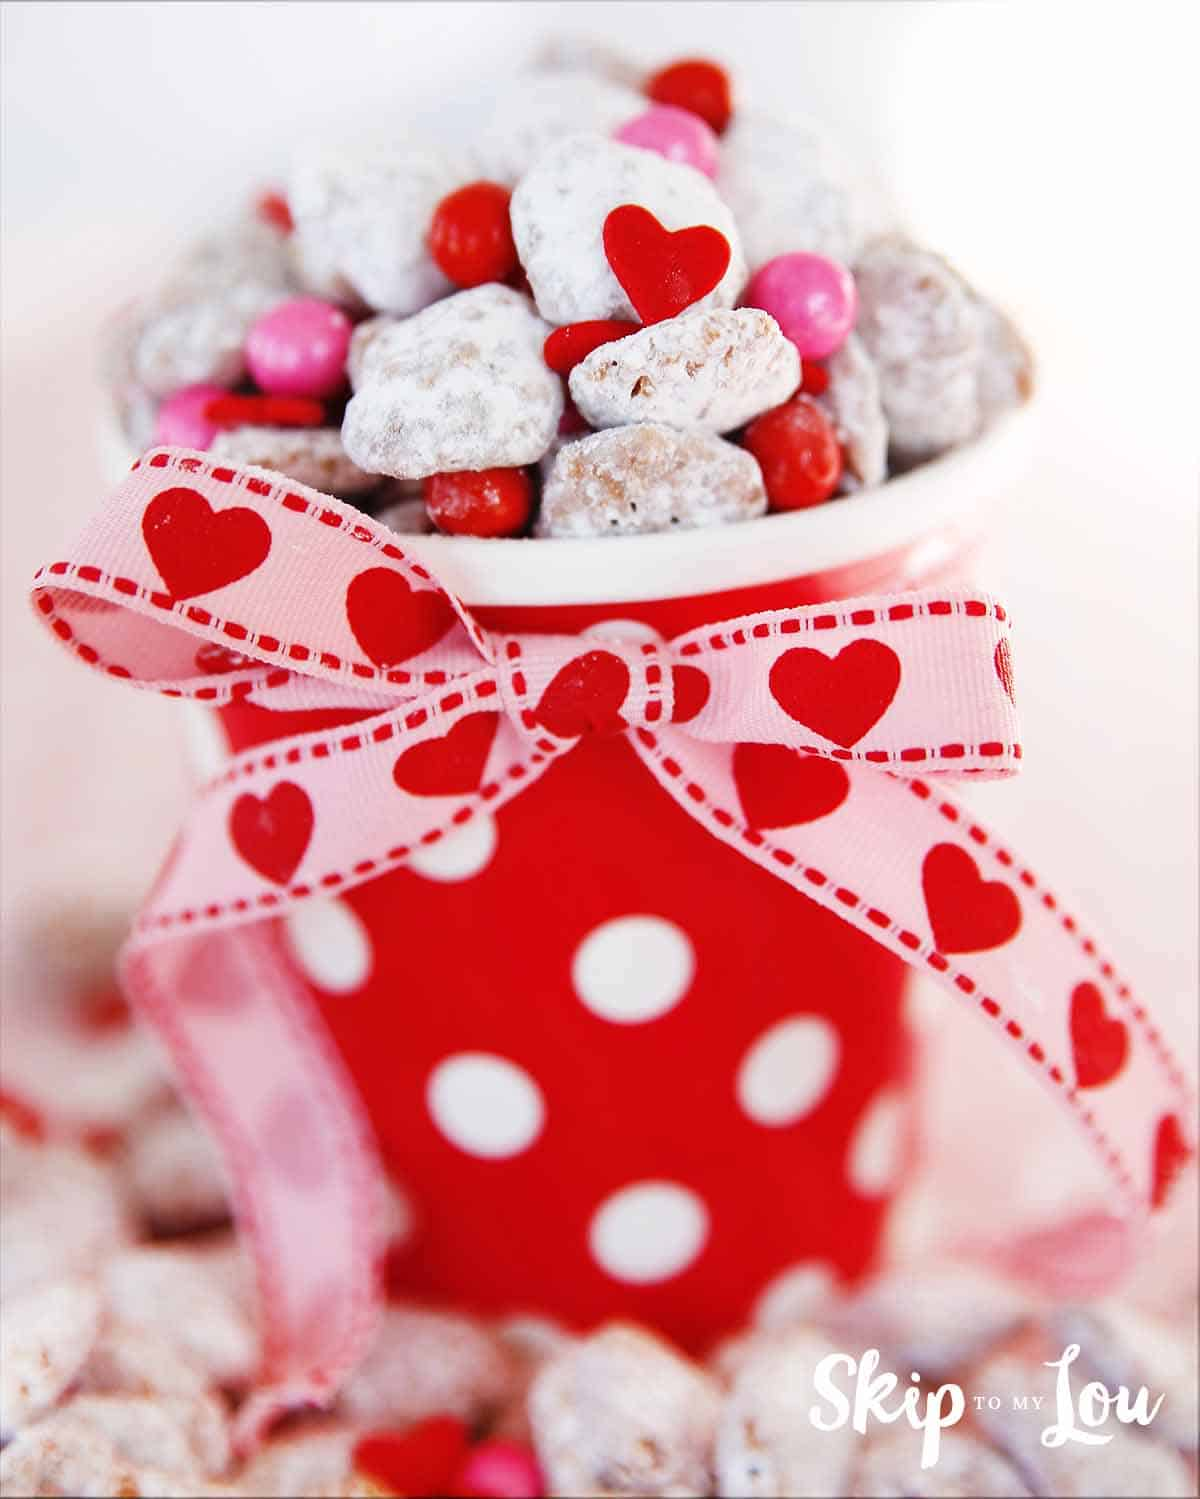 Fun and festive Valentine puppy chow